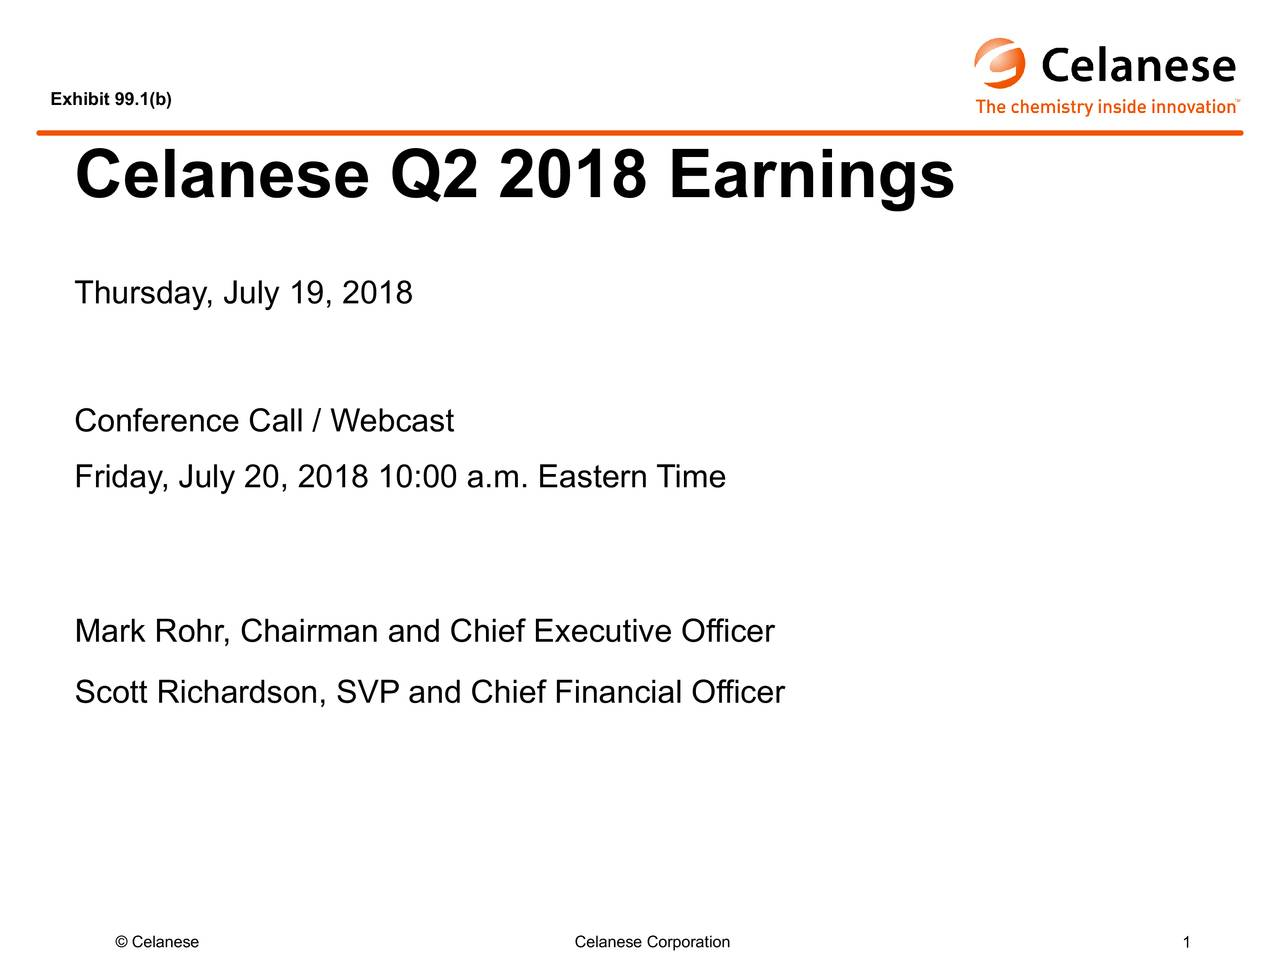 Celanese Q2 2018 Earnings Thursday, July 19, 2018 Conference Call / Webcast Friday, July 20, 2018 10:00 a.m. Eastern Time Mark Rohr, Chairman and Chief Executive Officer Scott Richardson, SVP and Chief Financial Officer